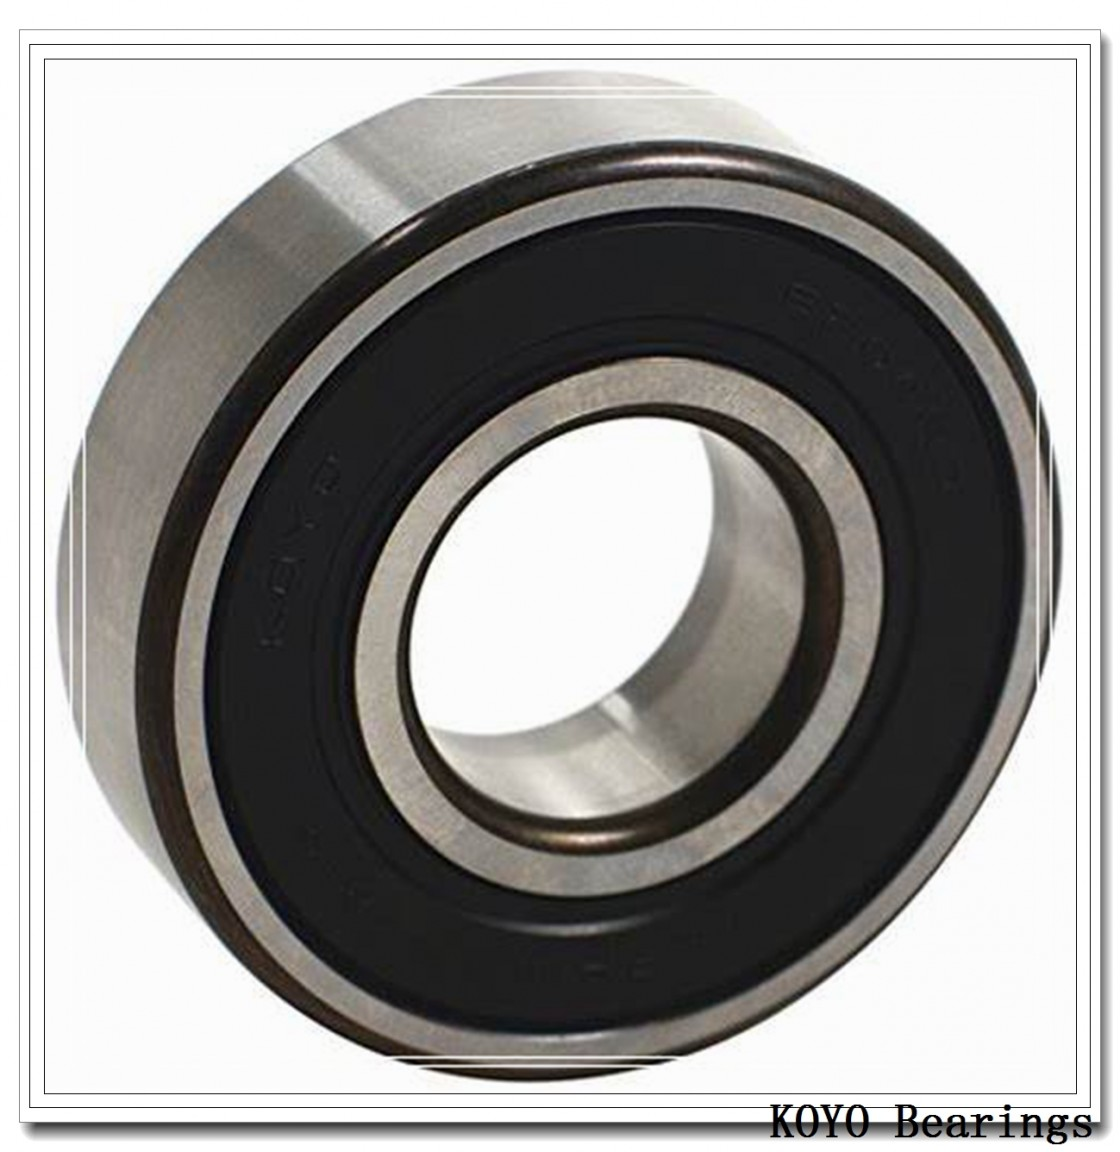 KOYO B1212 needle roller bearings